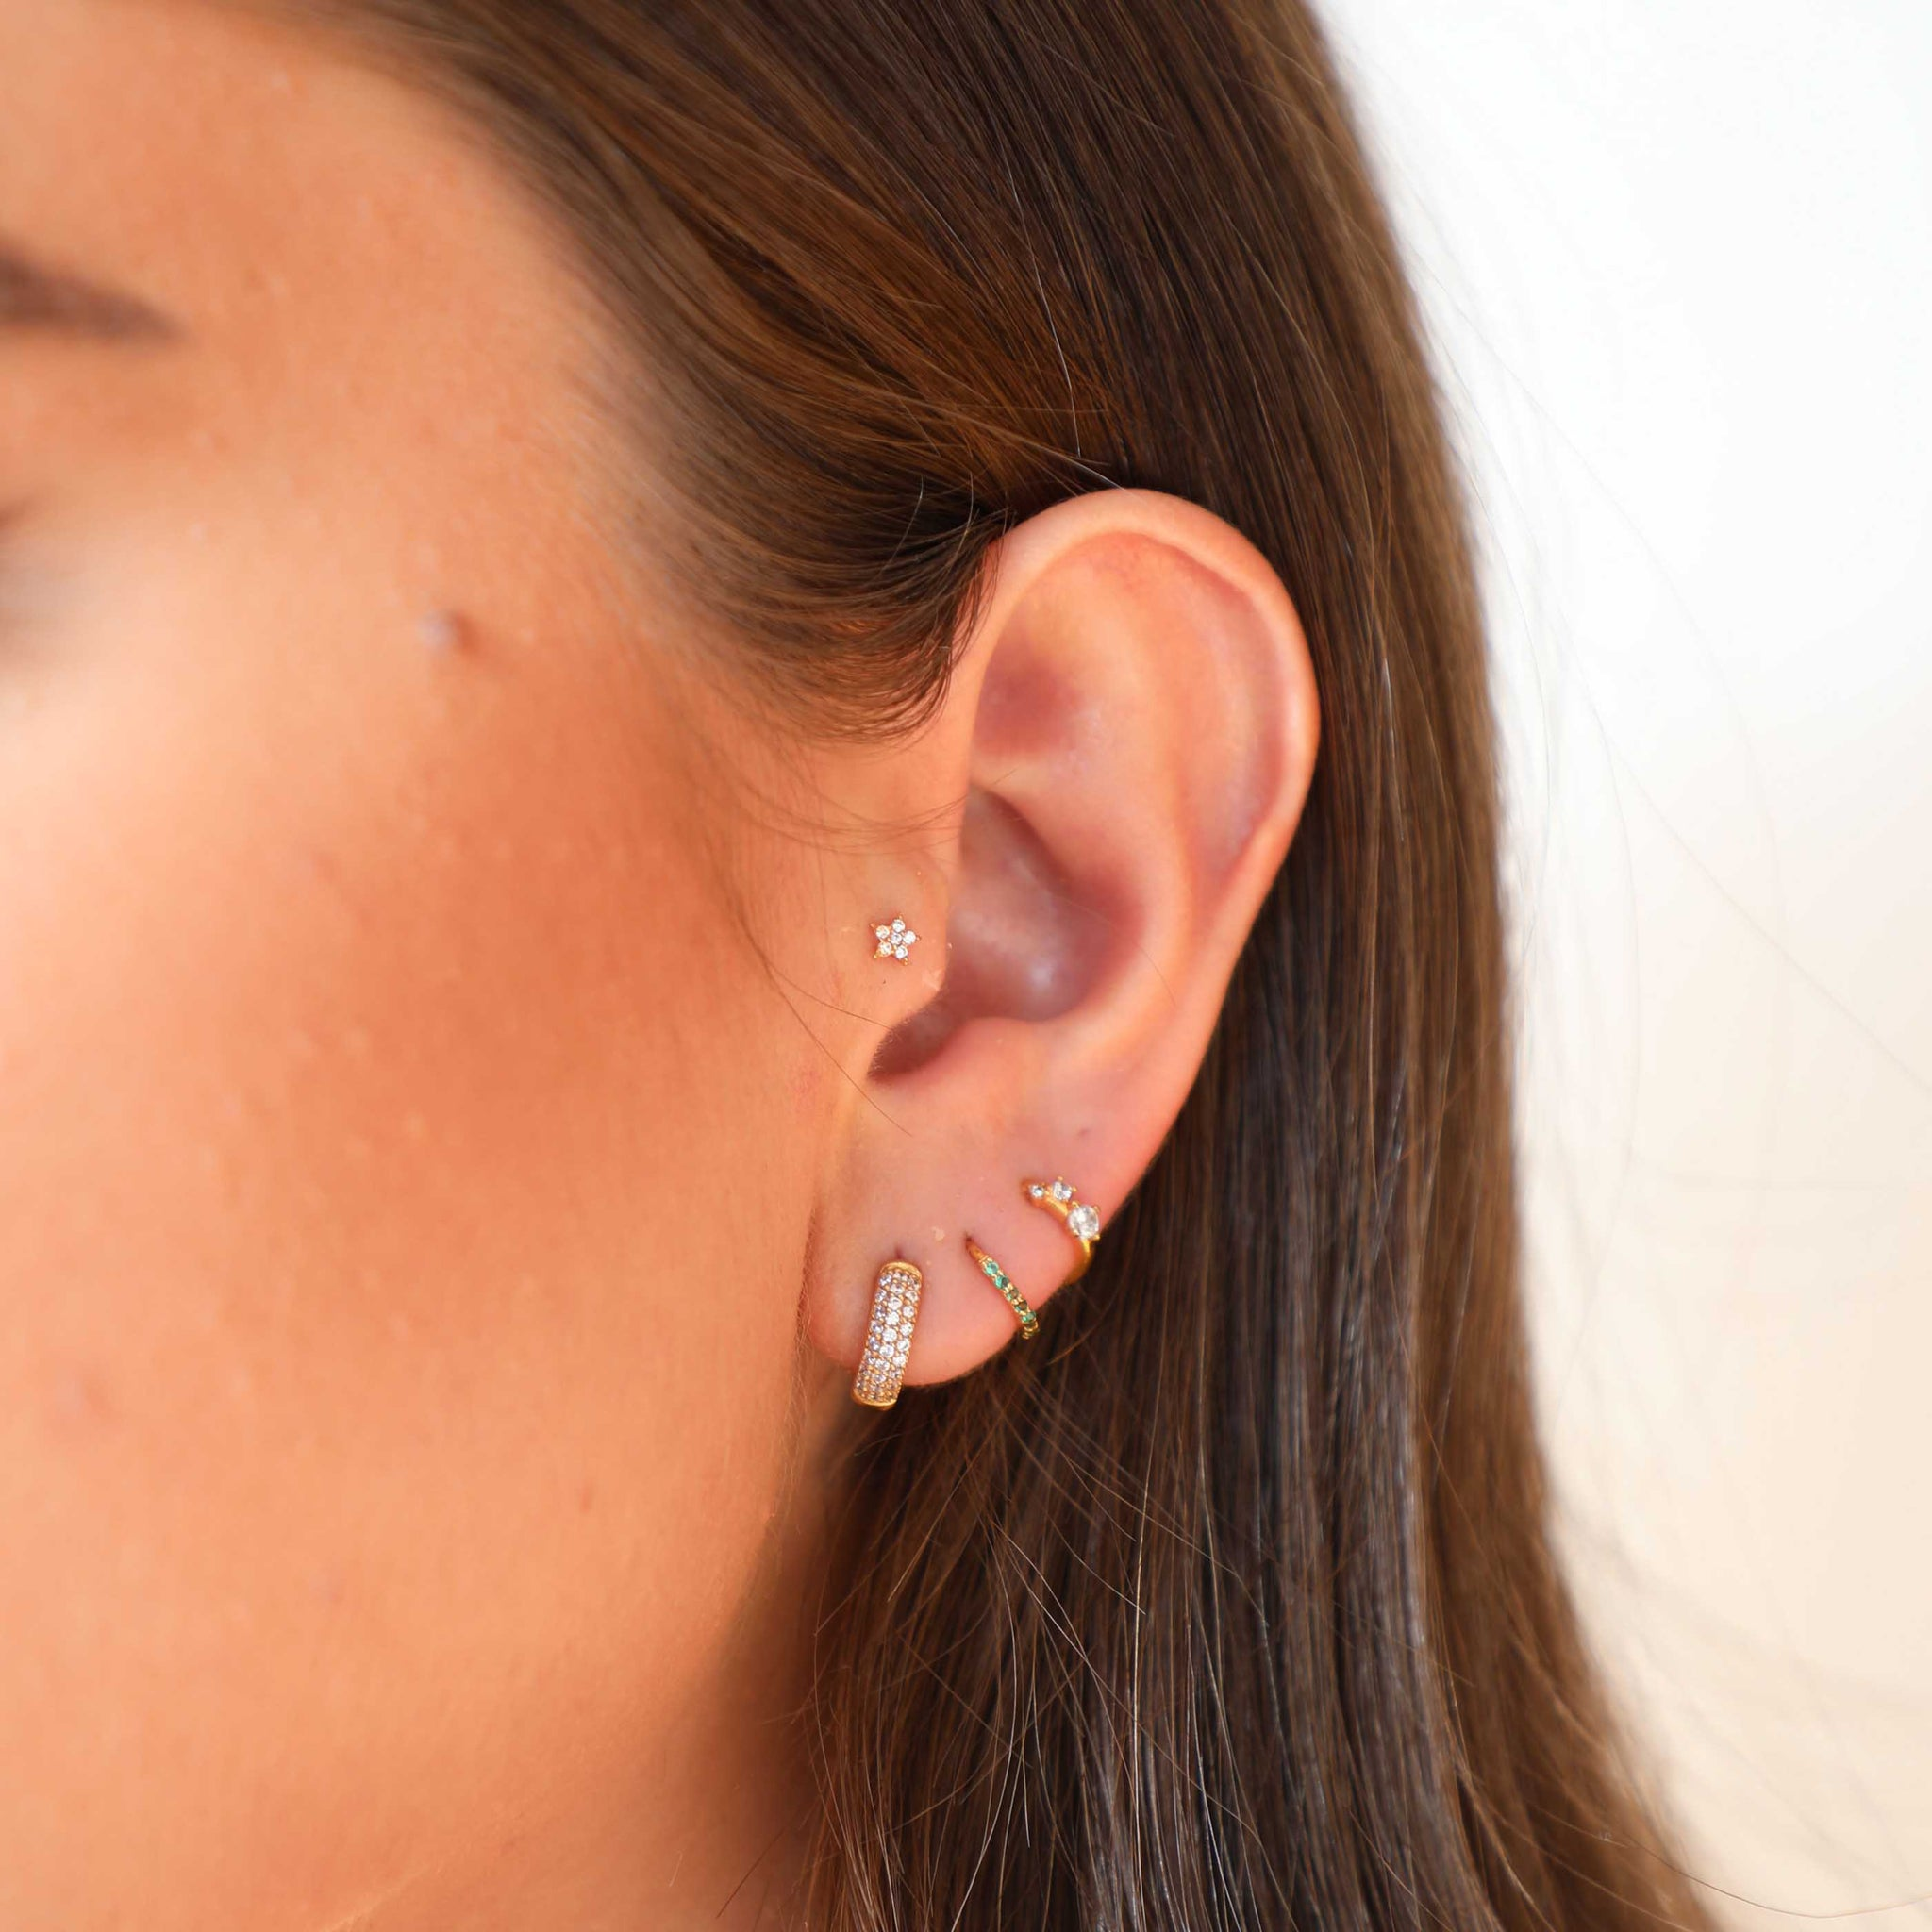 jewelled star barbell worn in tragus piercing